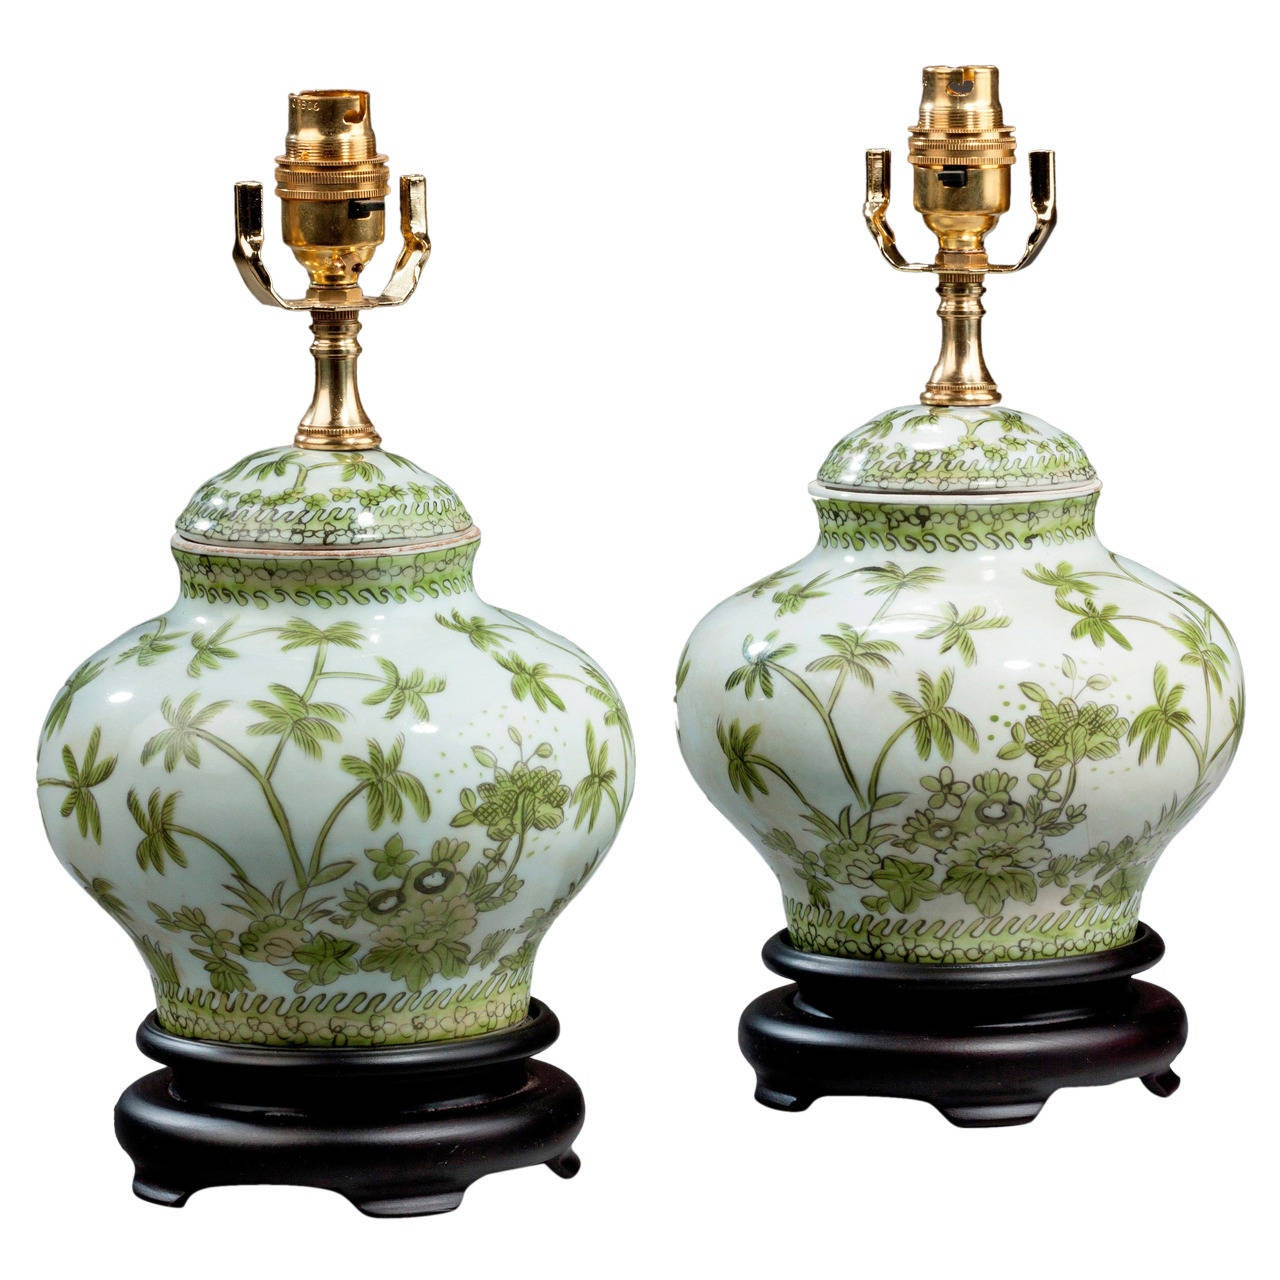 Pair Of 20th Century Clobbered Porcelain Vase Lamps At 1stdibs